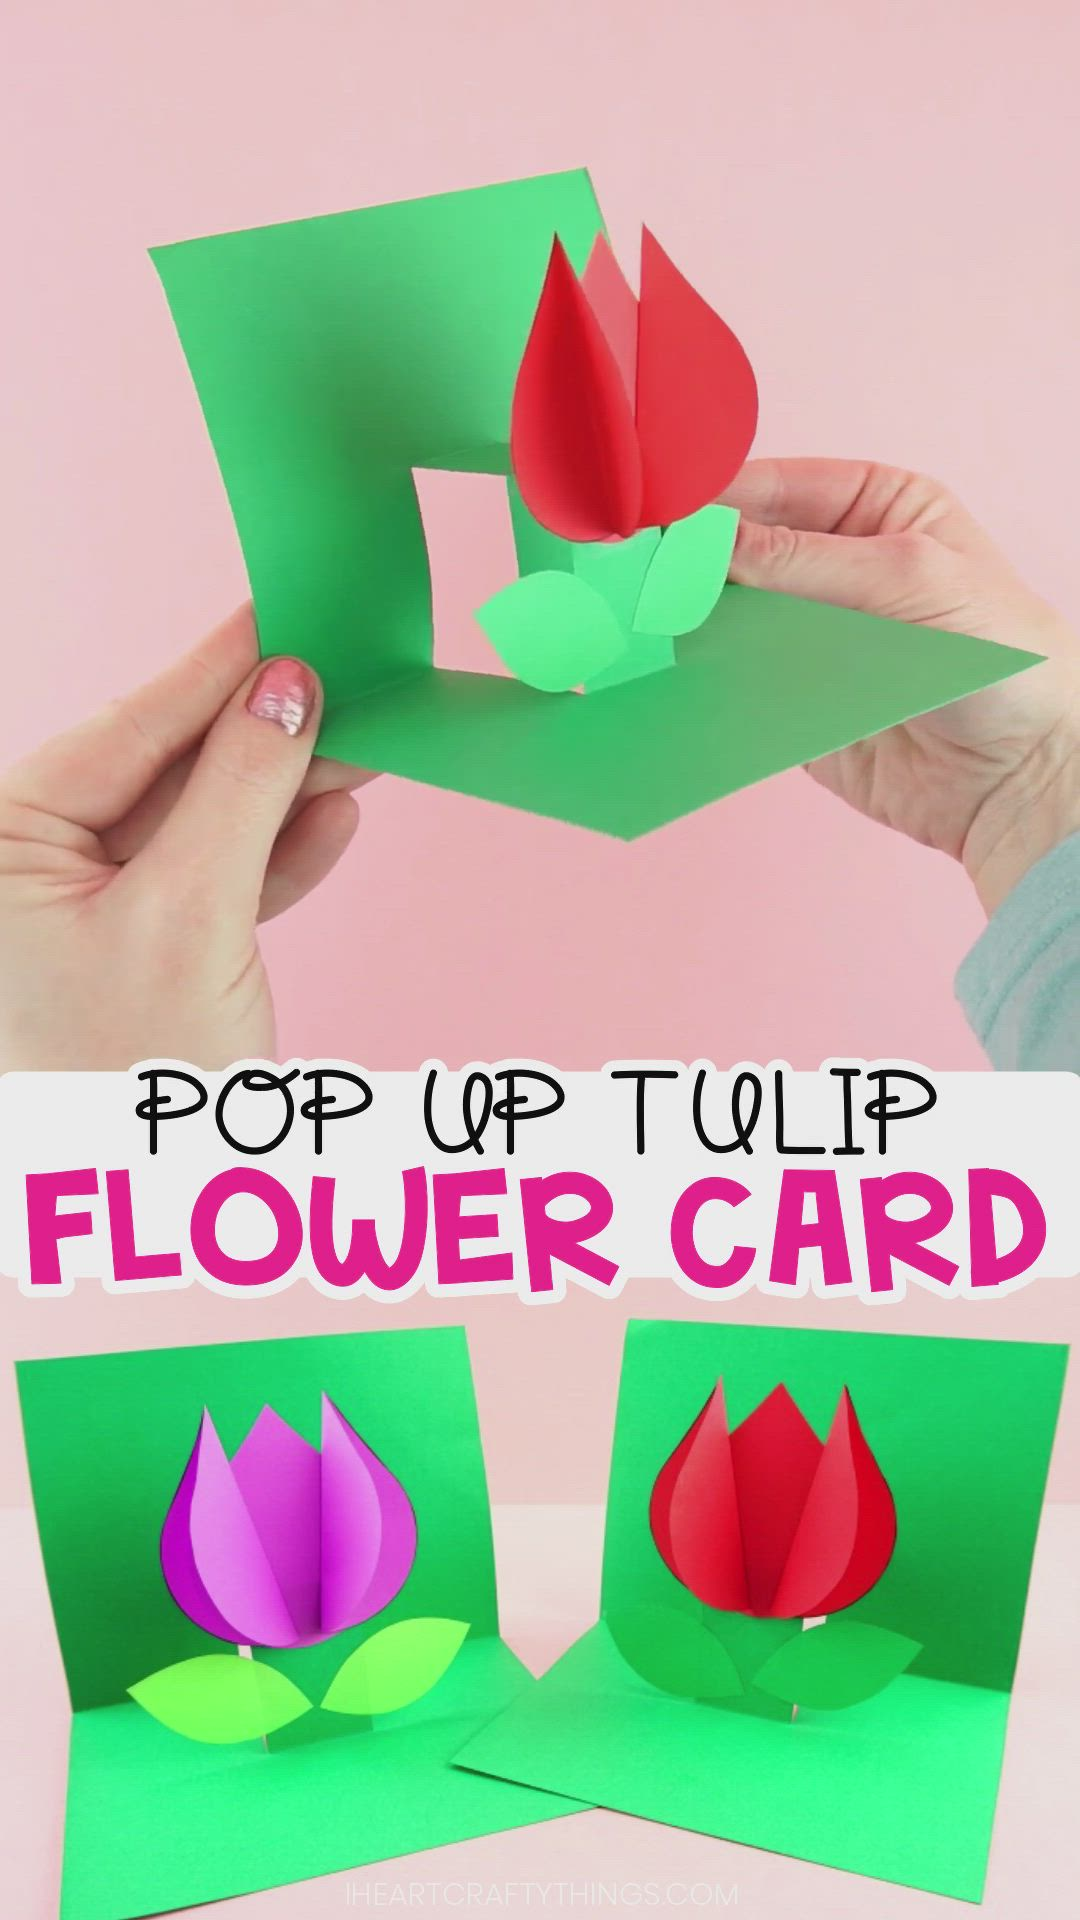 How To Make A Pop Up Flower Card Easy Spring Tulip Craft For